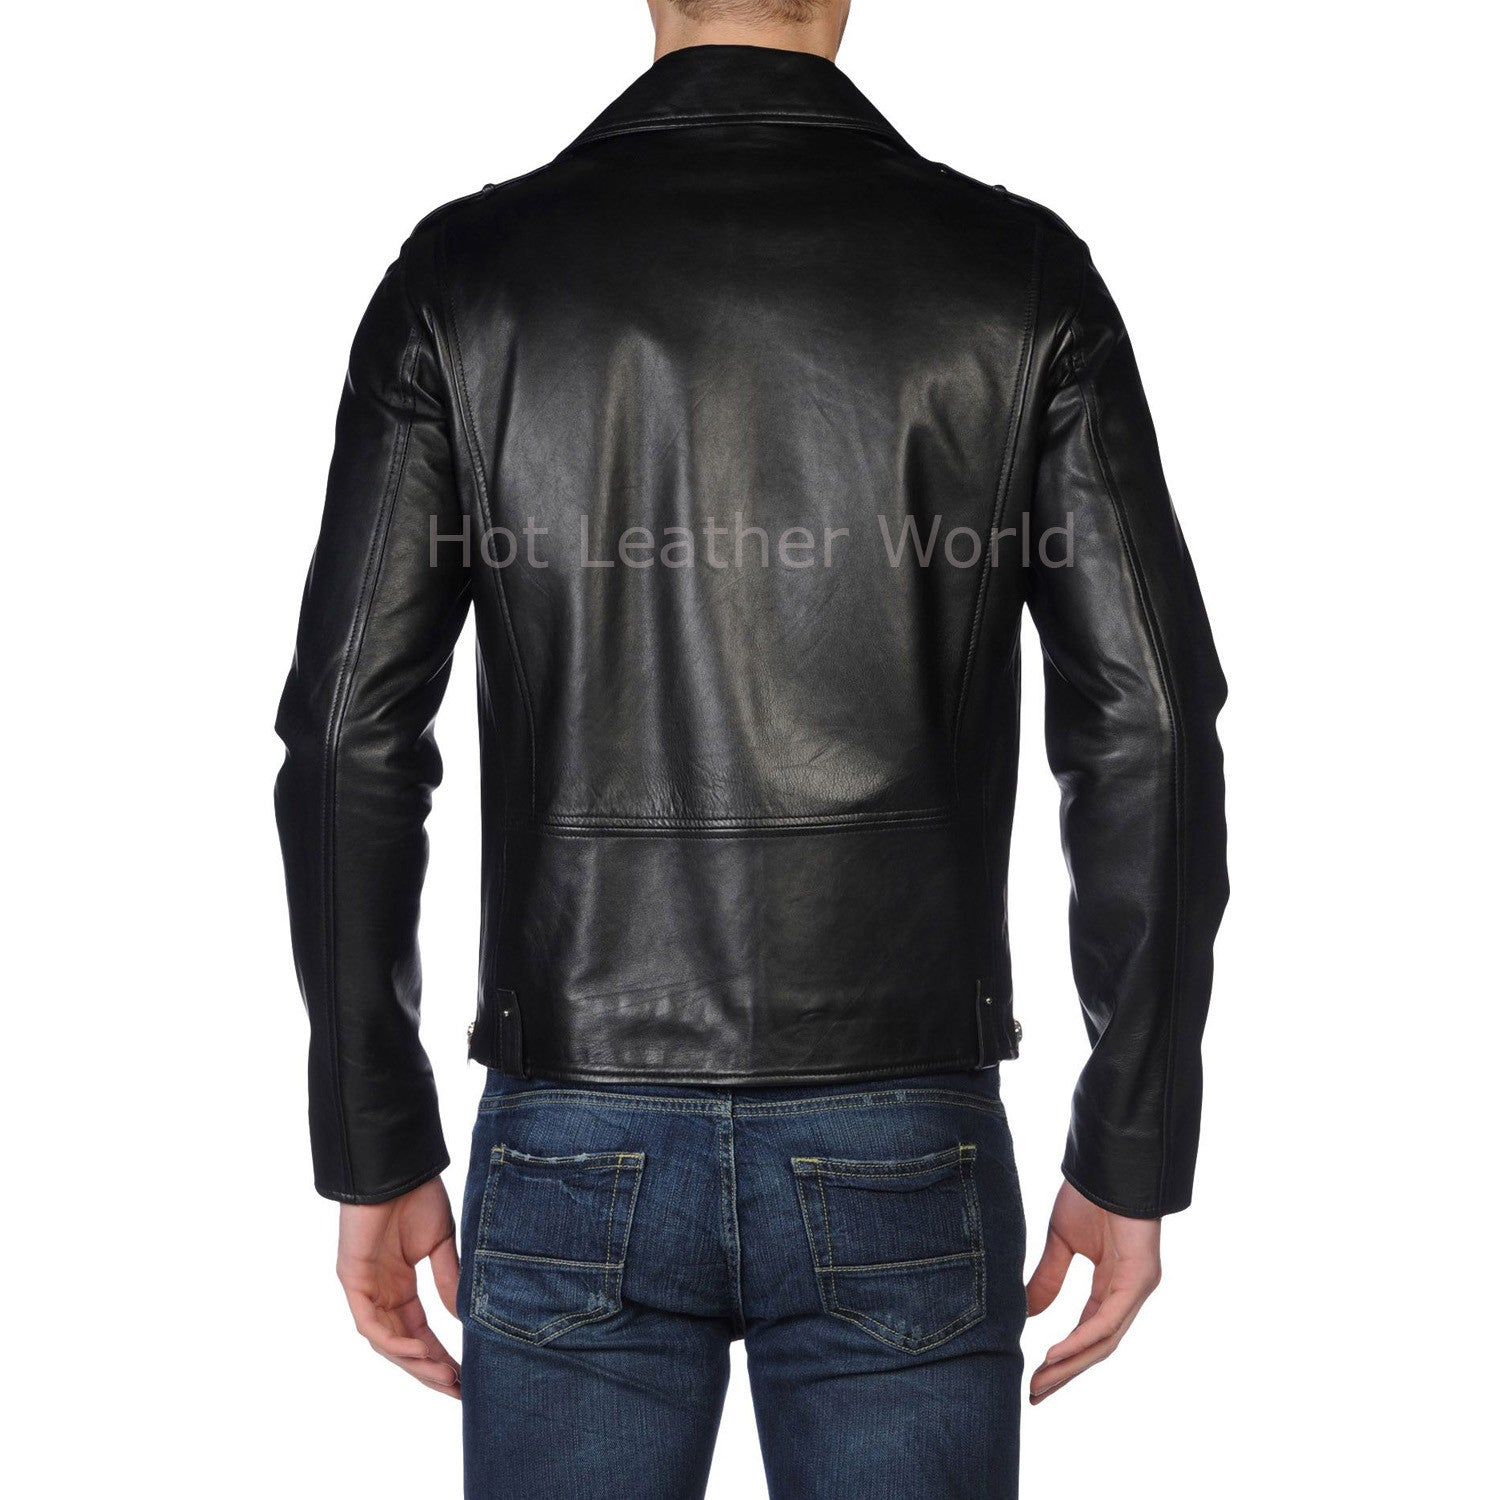 Notch Collar Designer Men Leather Biker Jacket -  HOTLEATHERWORLD